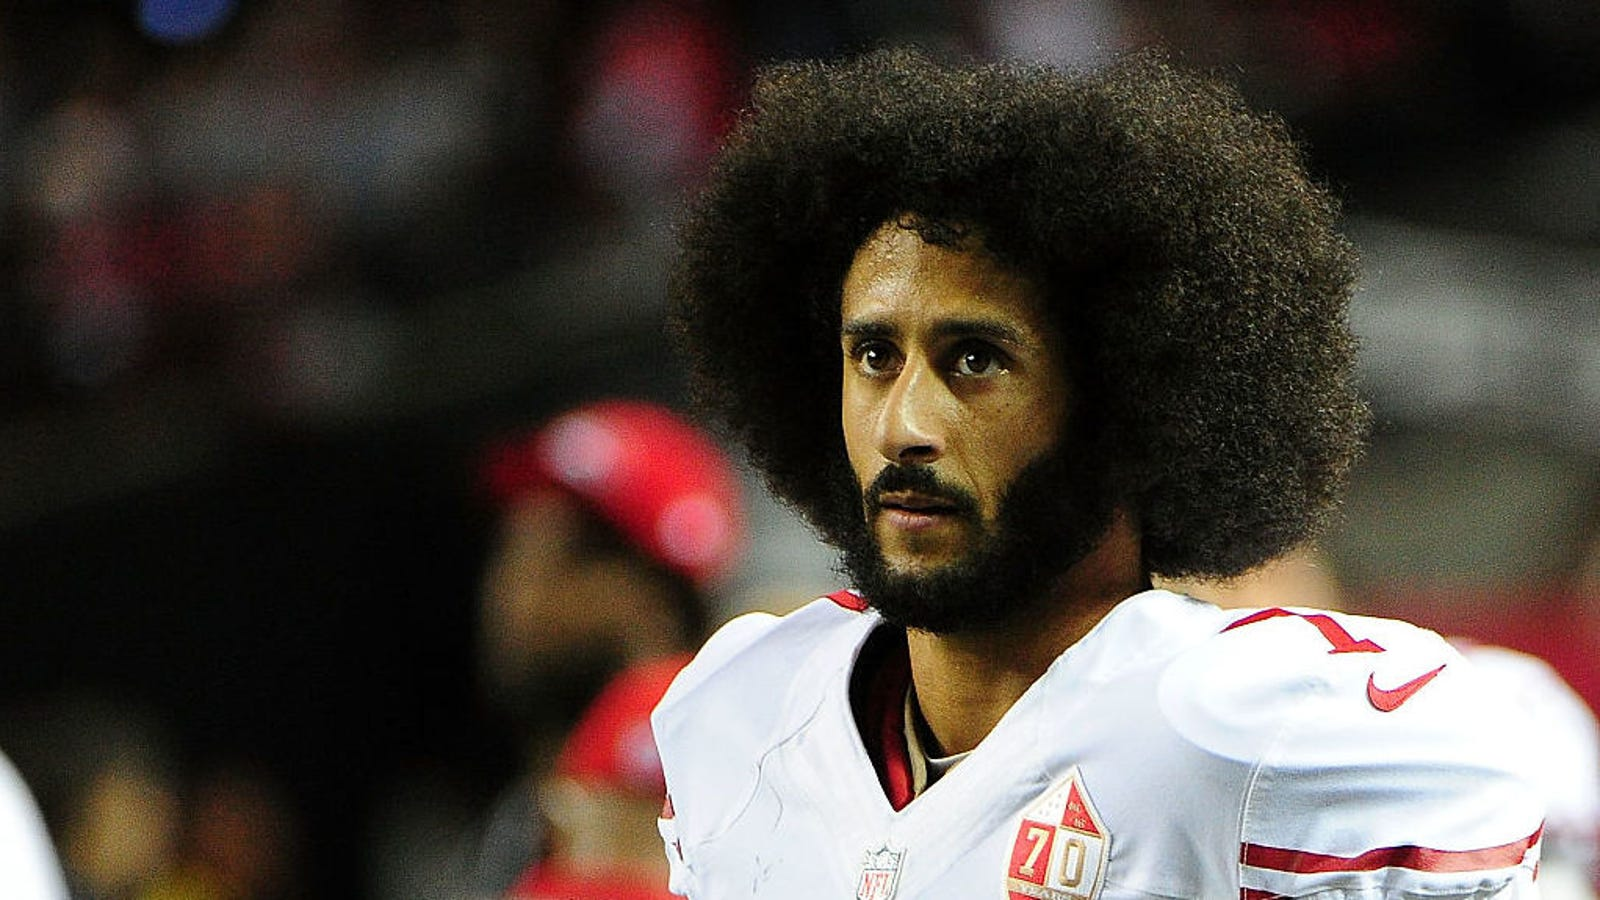 Report: The NFL Polled Americans About Signing Colin Kaepernick